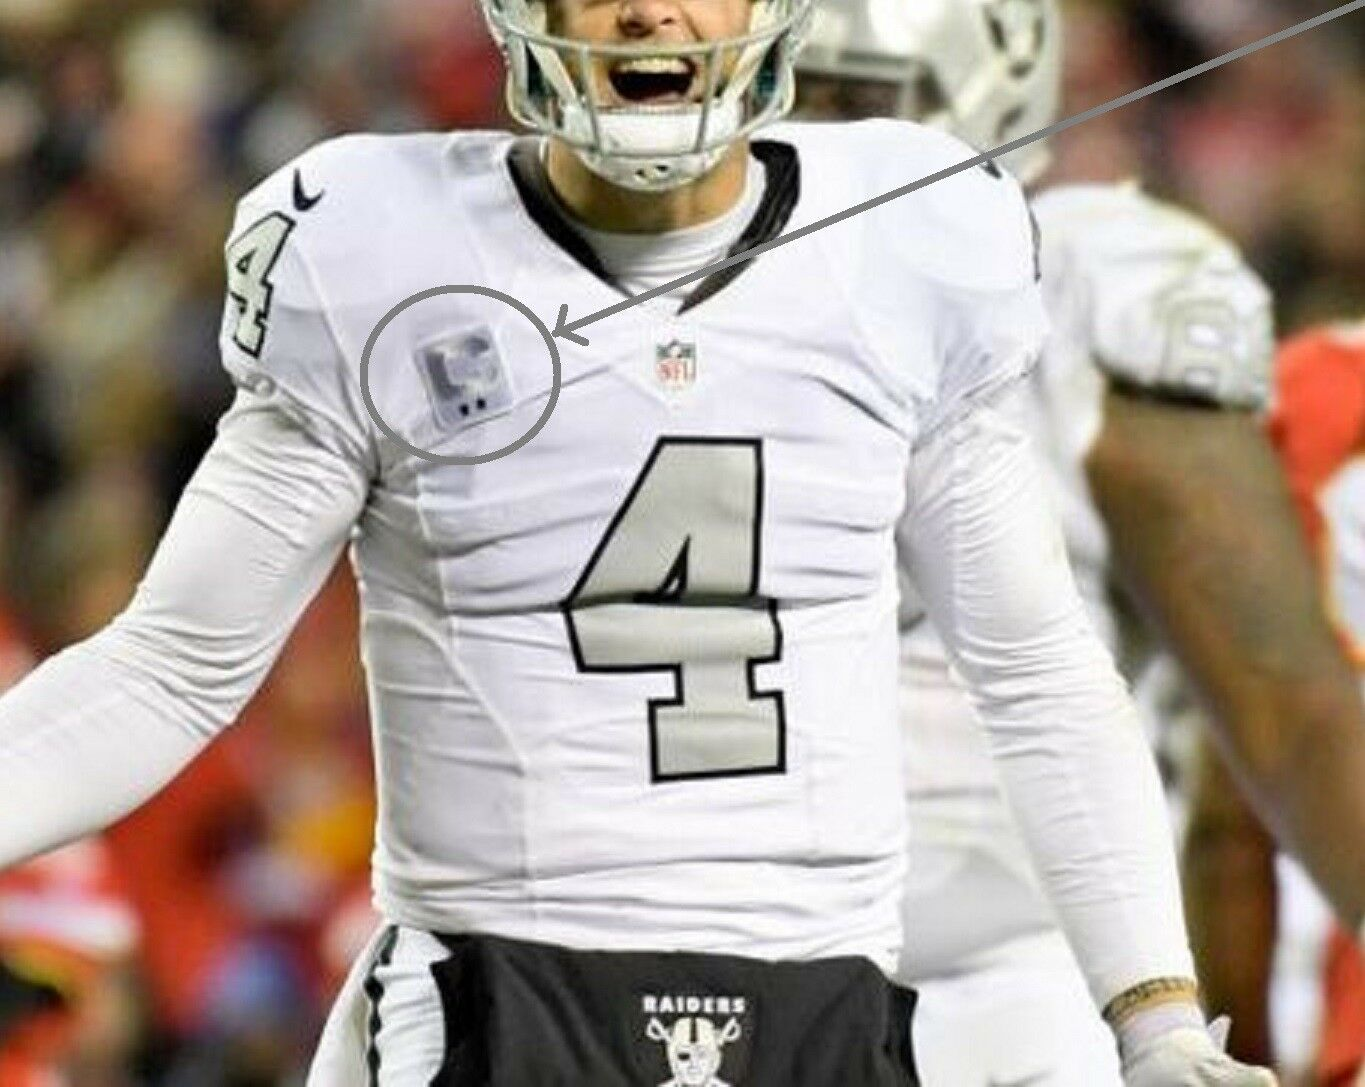 Parity > derek carr color rush jersey, Up to 75% OFF